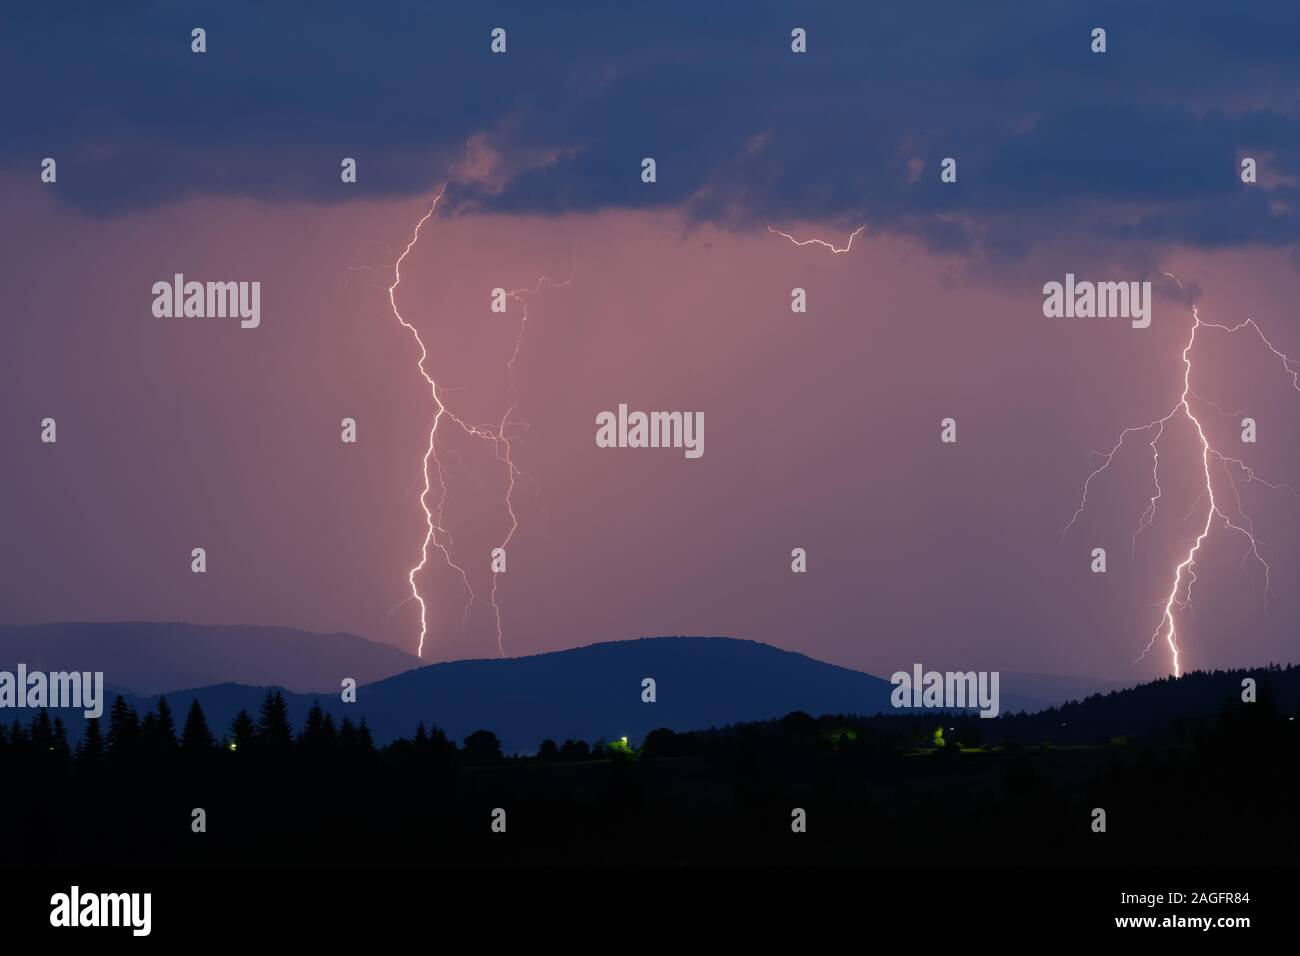 Thunderstorm with lightning on the mountain. Thunderstorms on a mountain plateau with thunderstorms after sunset. Thunderstorms and storm over pine fo Stock Photo